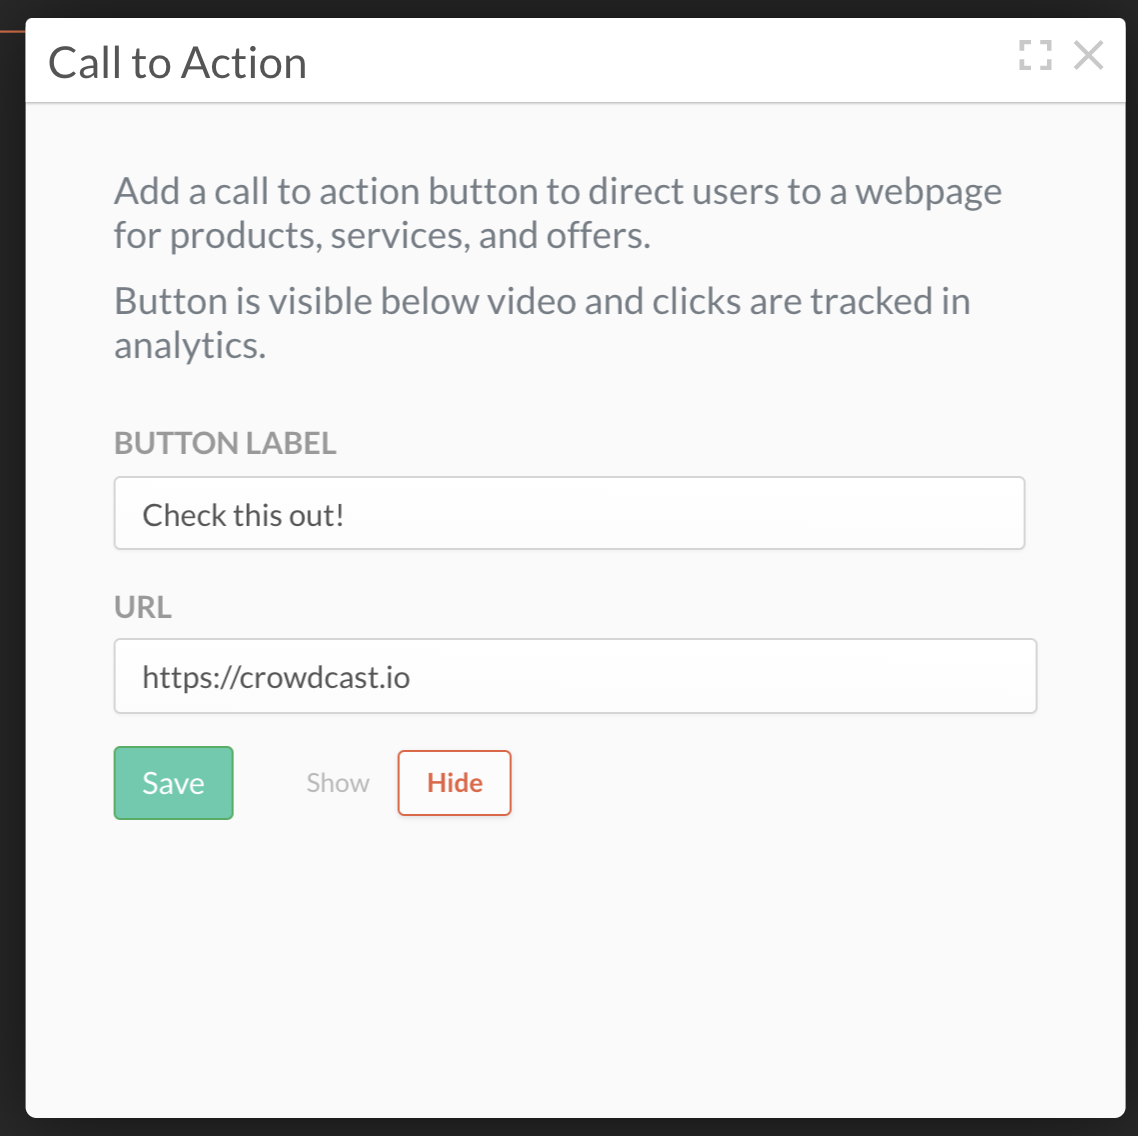 Call to action pop-up with button label and URL entered